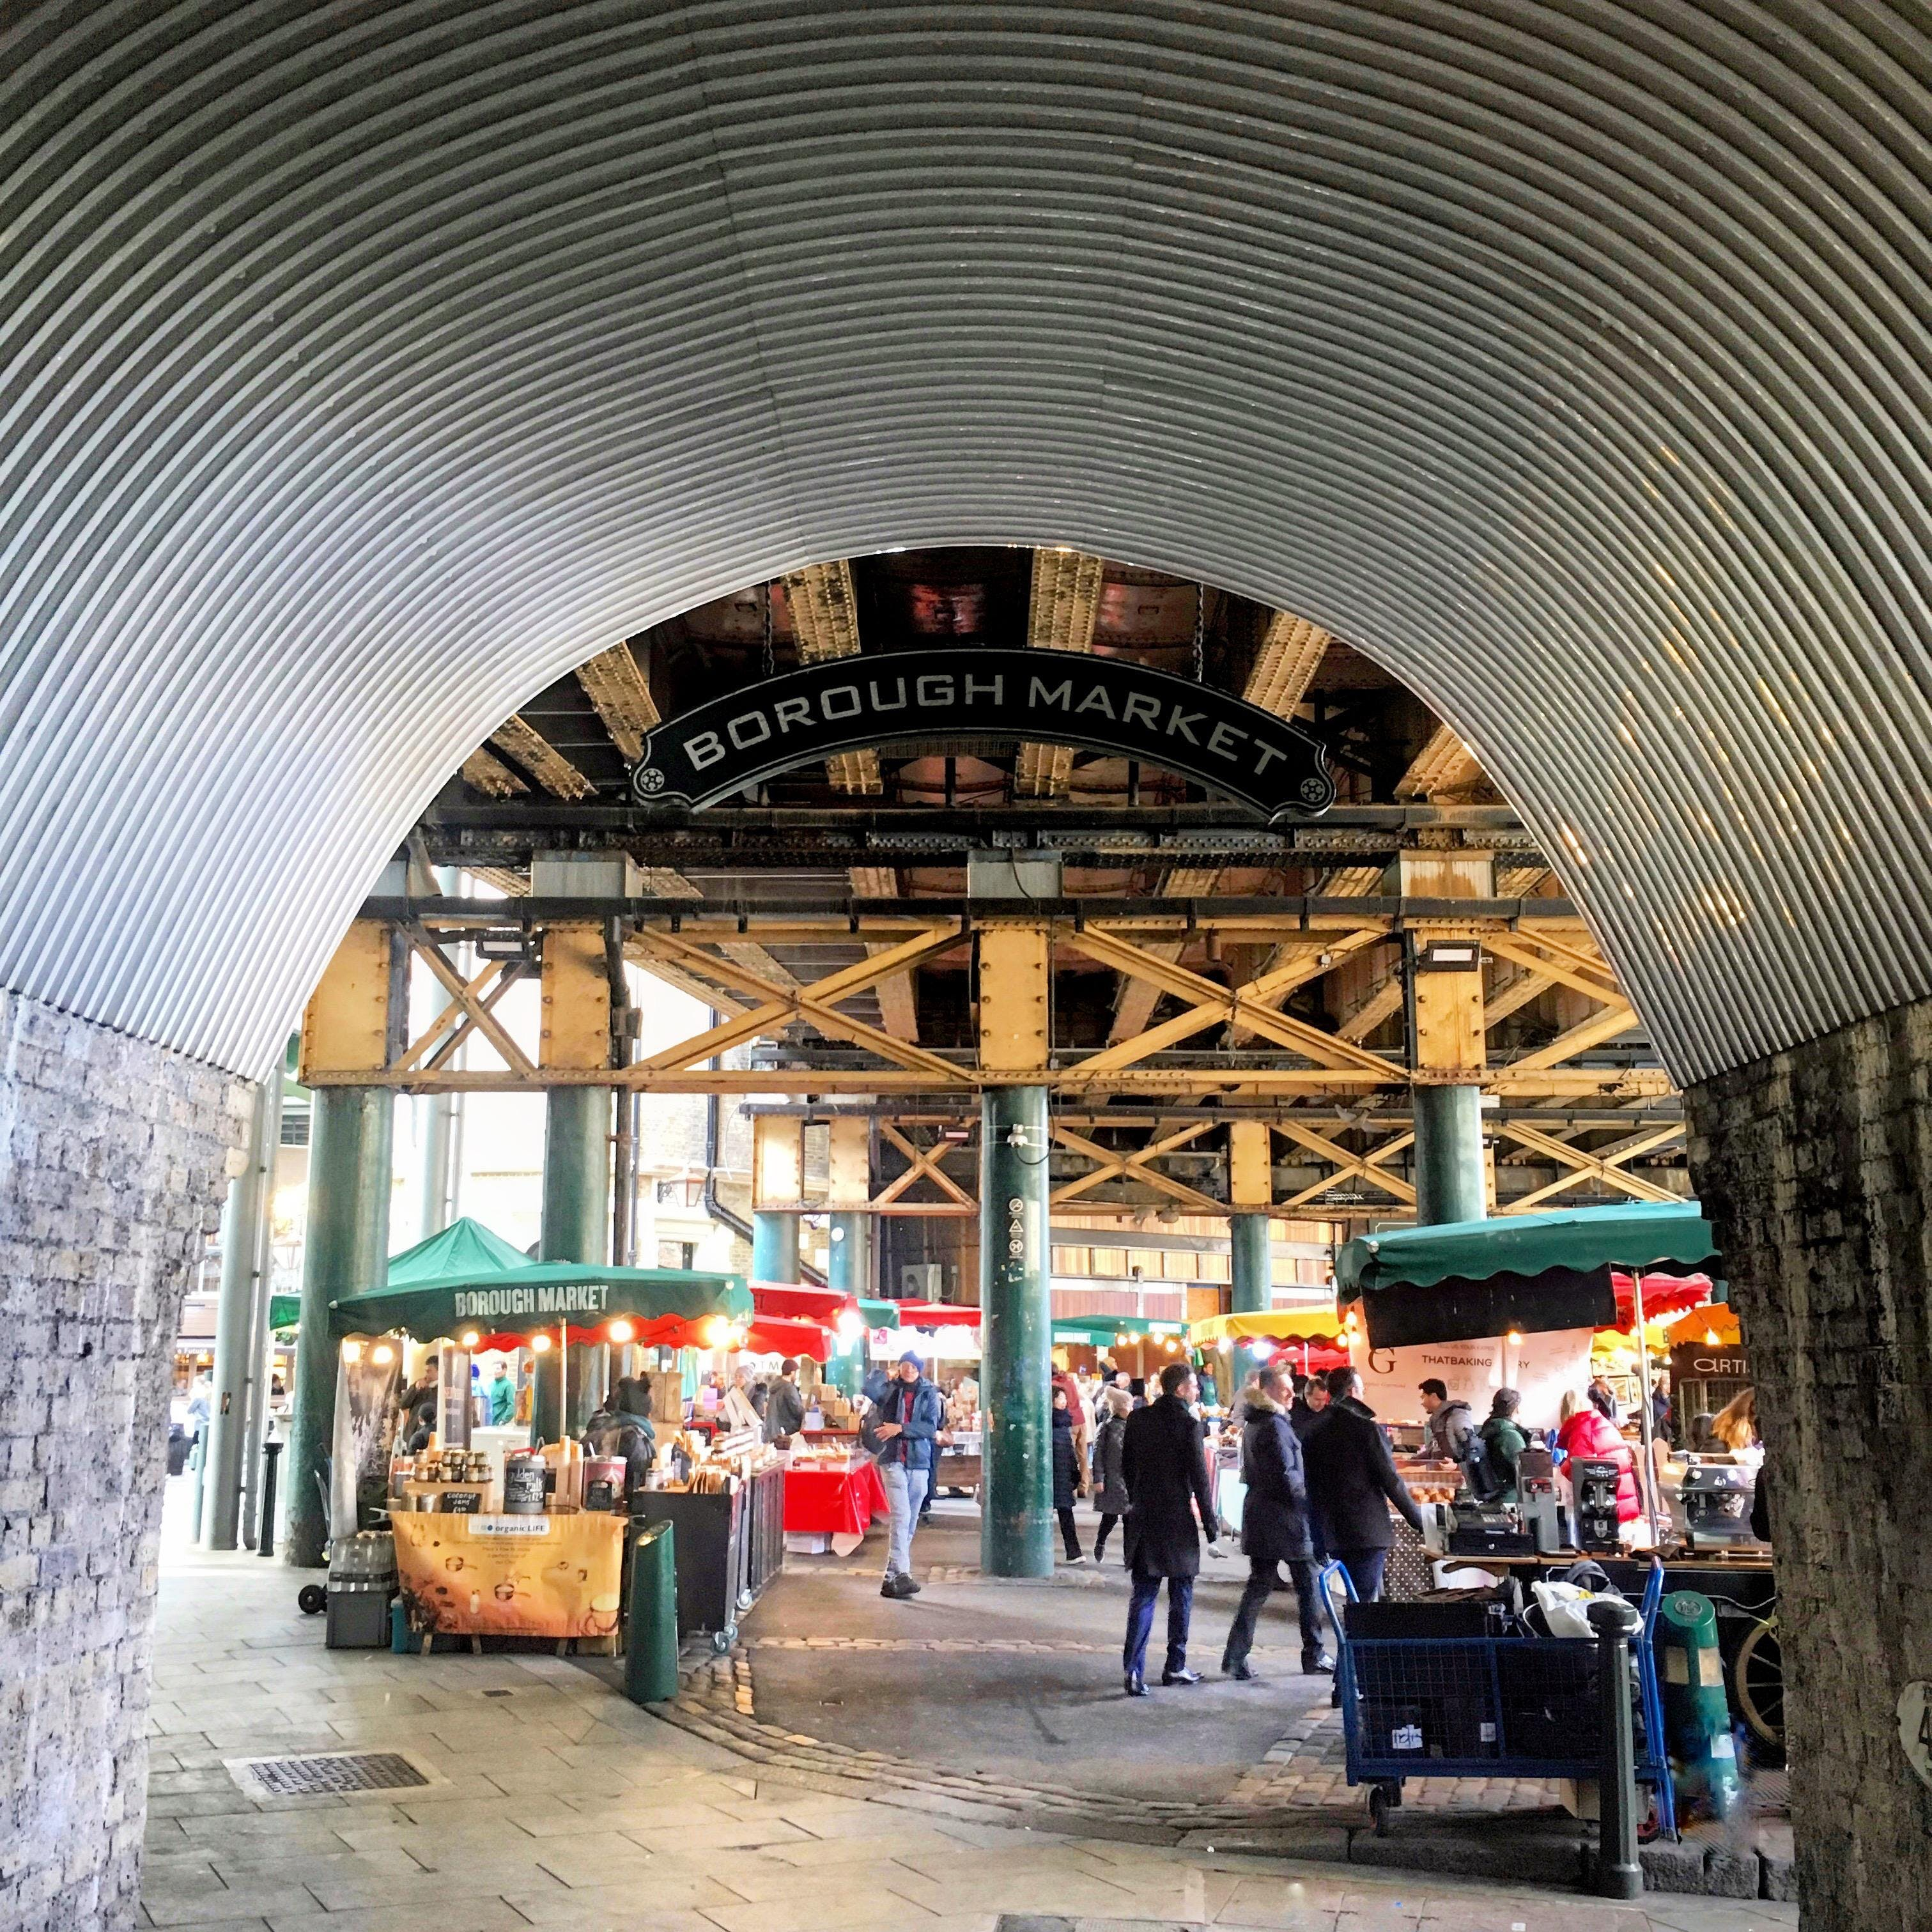 ARCHITECTURAL TOUR OF BOROUGH MARKET